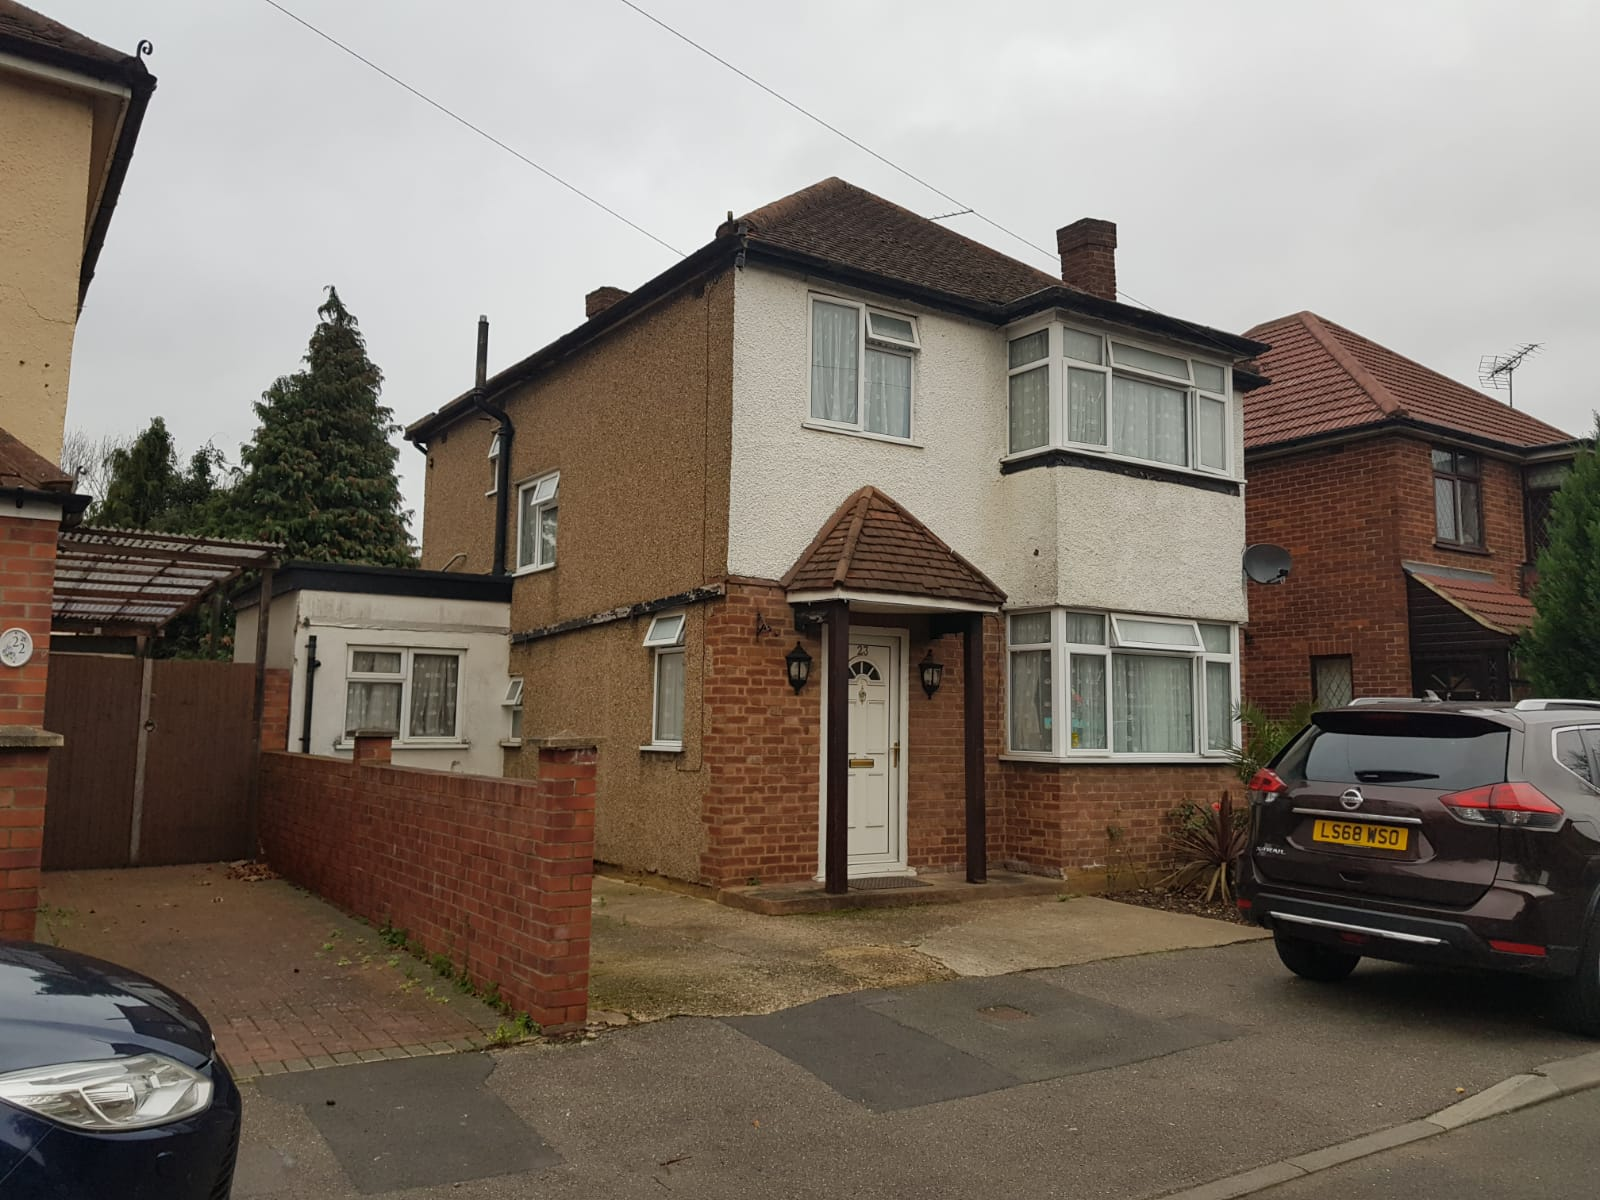 23 Brooklyn Way, West Drayton UB7 7PD